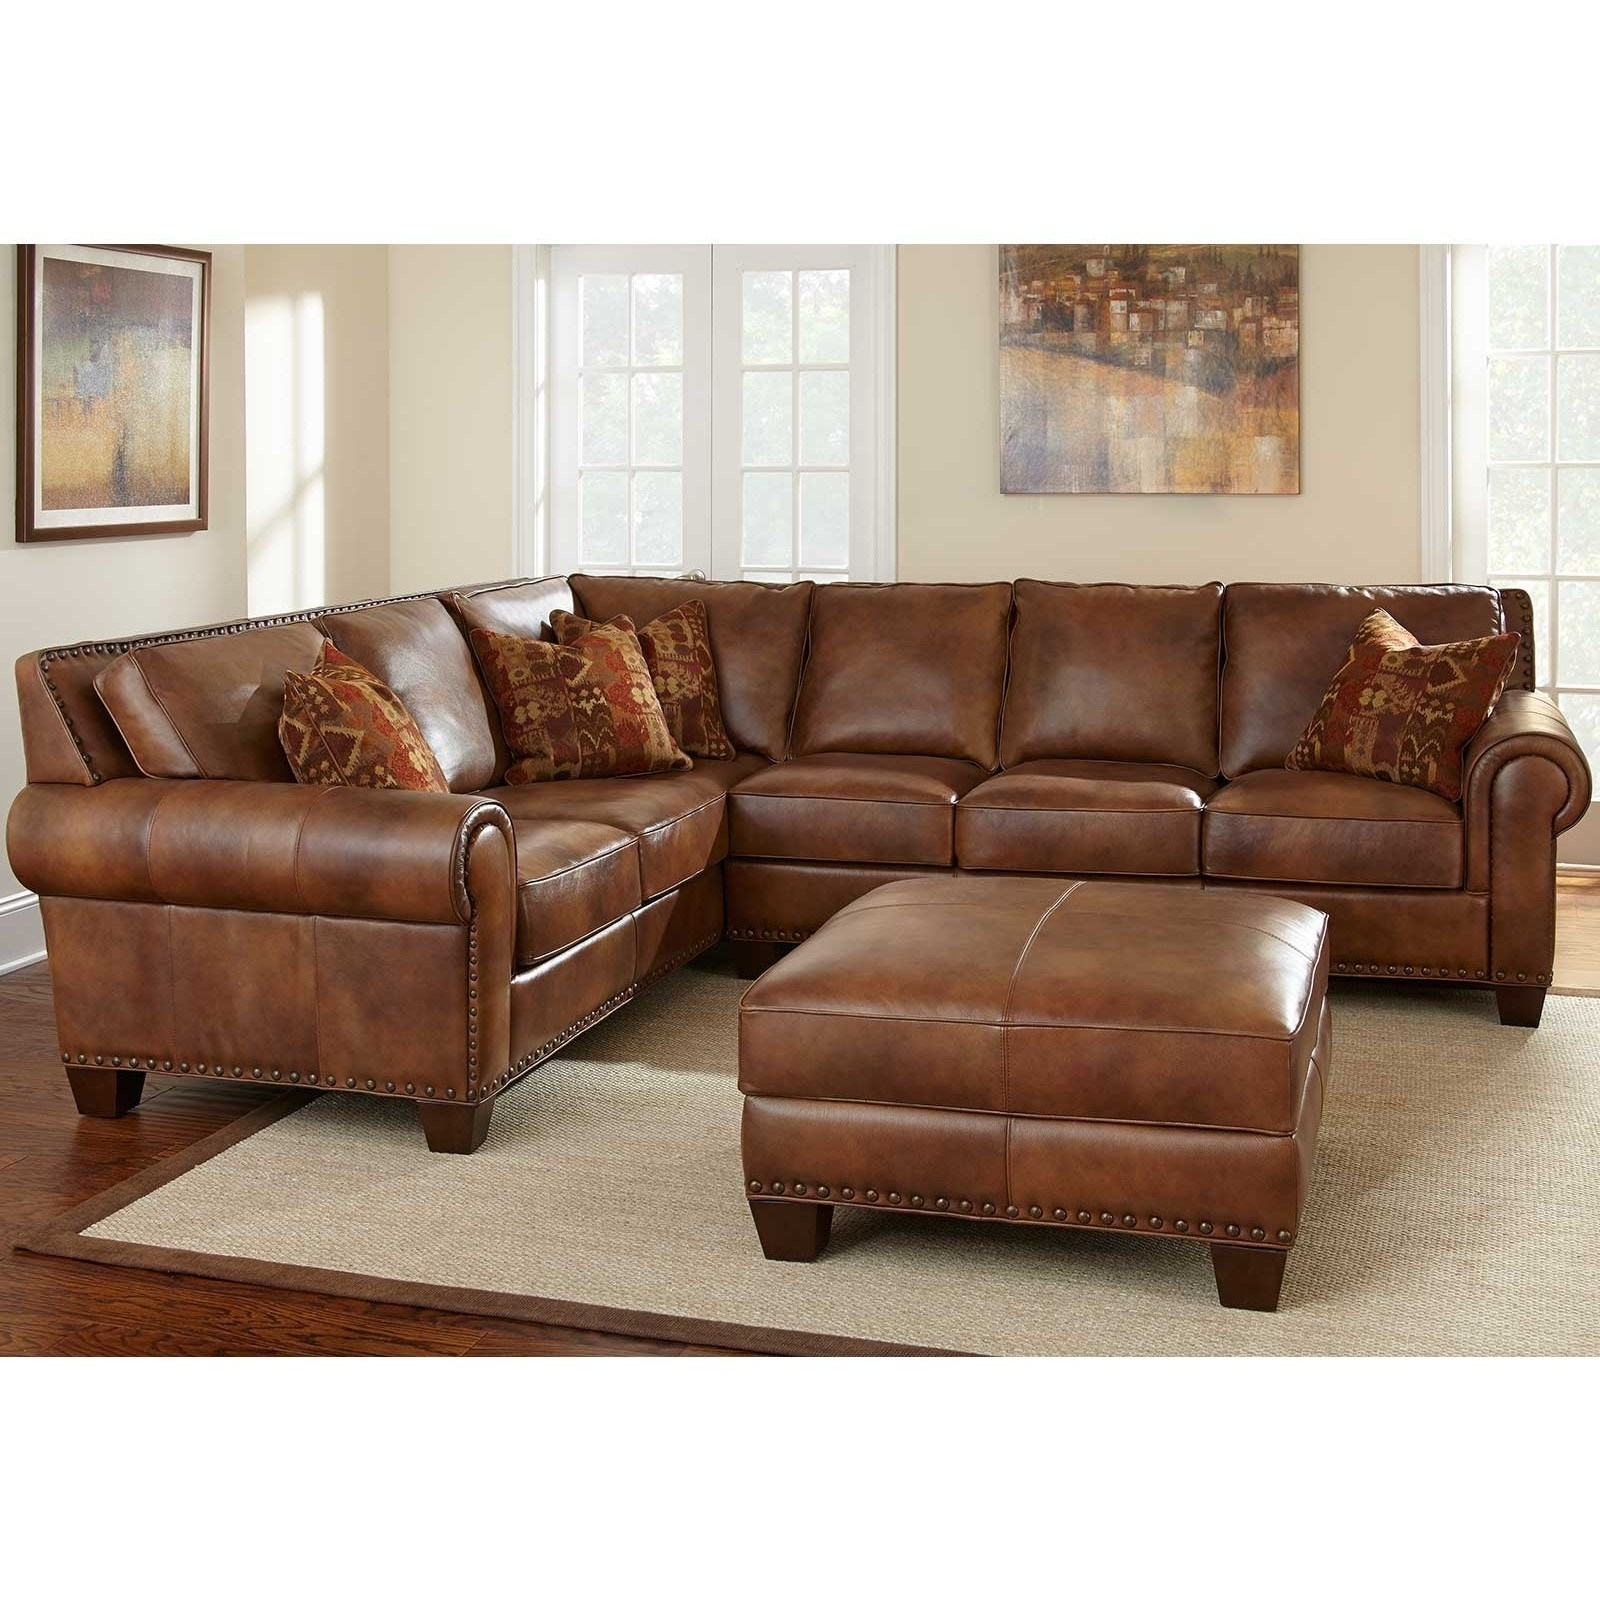 Well Known Sectional Sofa Sales – Hotelsbacau Intended For North Carolina Sectional Sofas (View 7 of 20)